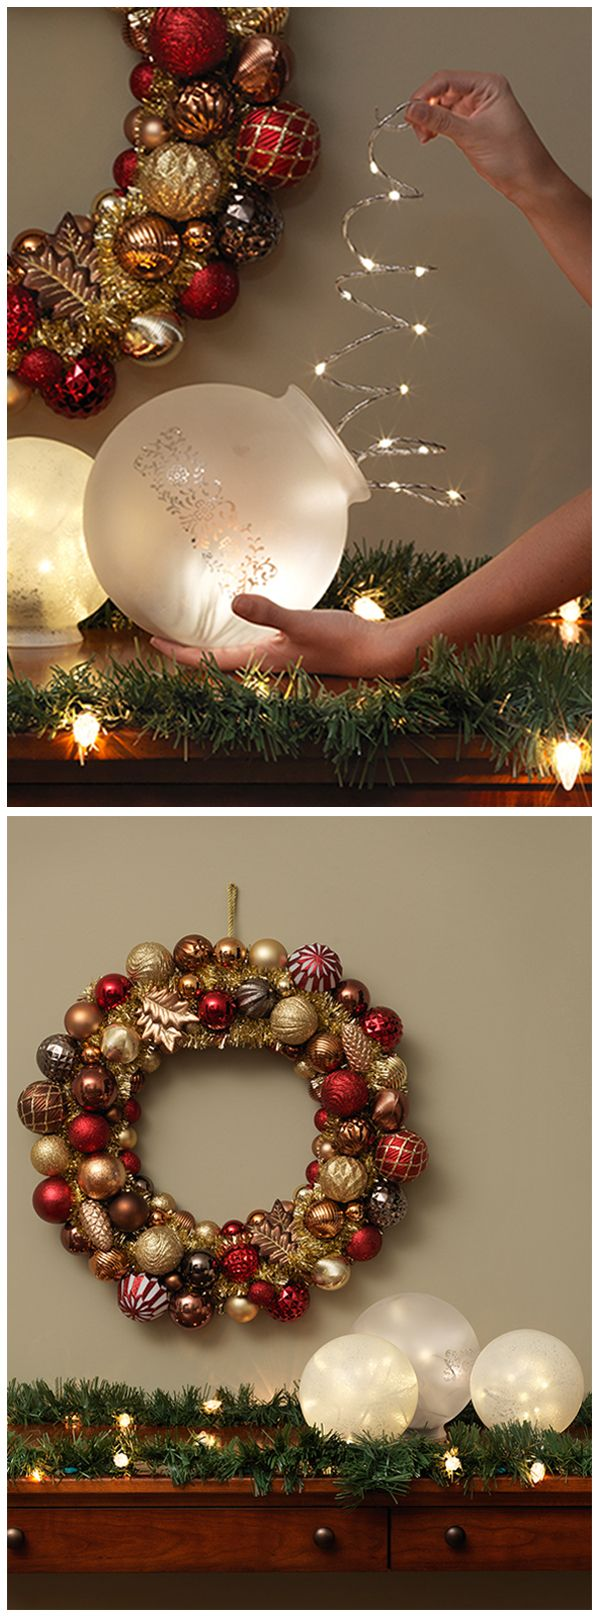 Create these luminous Christmas table decorations using ordinary light fixture globes and battery-powered LED lights.